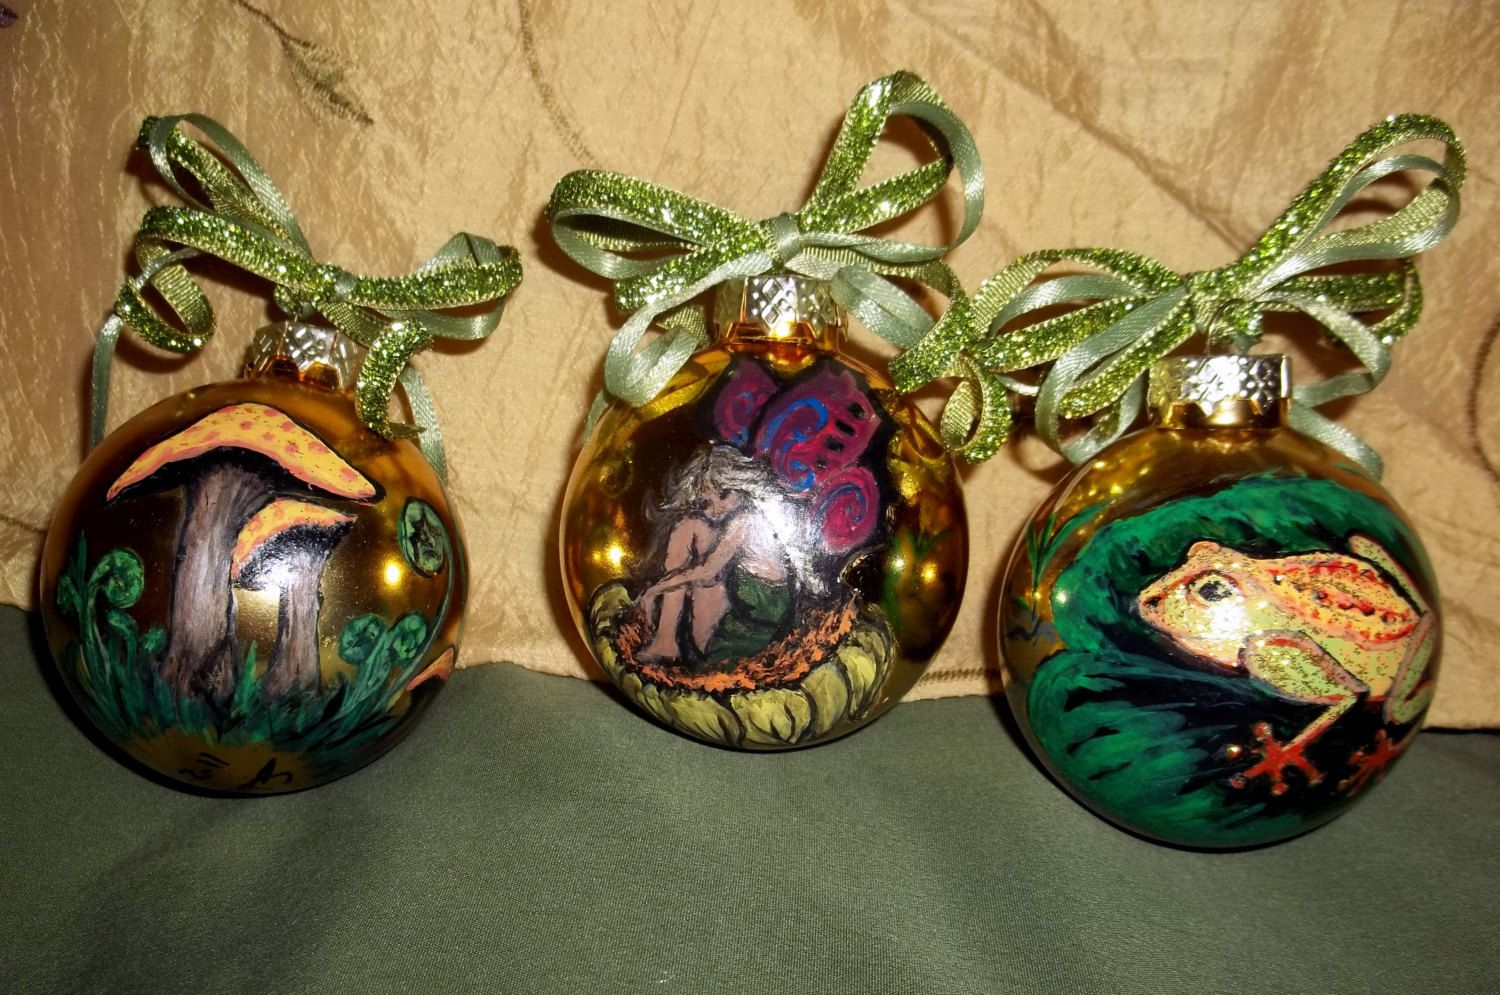 Fairy christmas ornaments - Woodland Fairy Christmas Ornaments Fairy Ornaments Fairy Christmas Balls Hand Painted By Me On